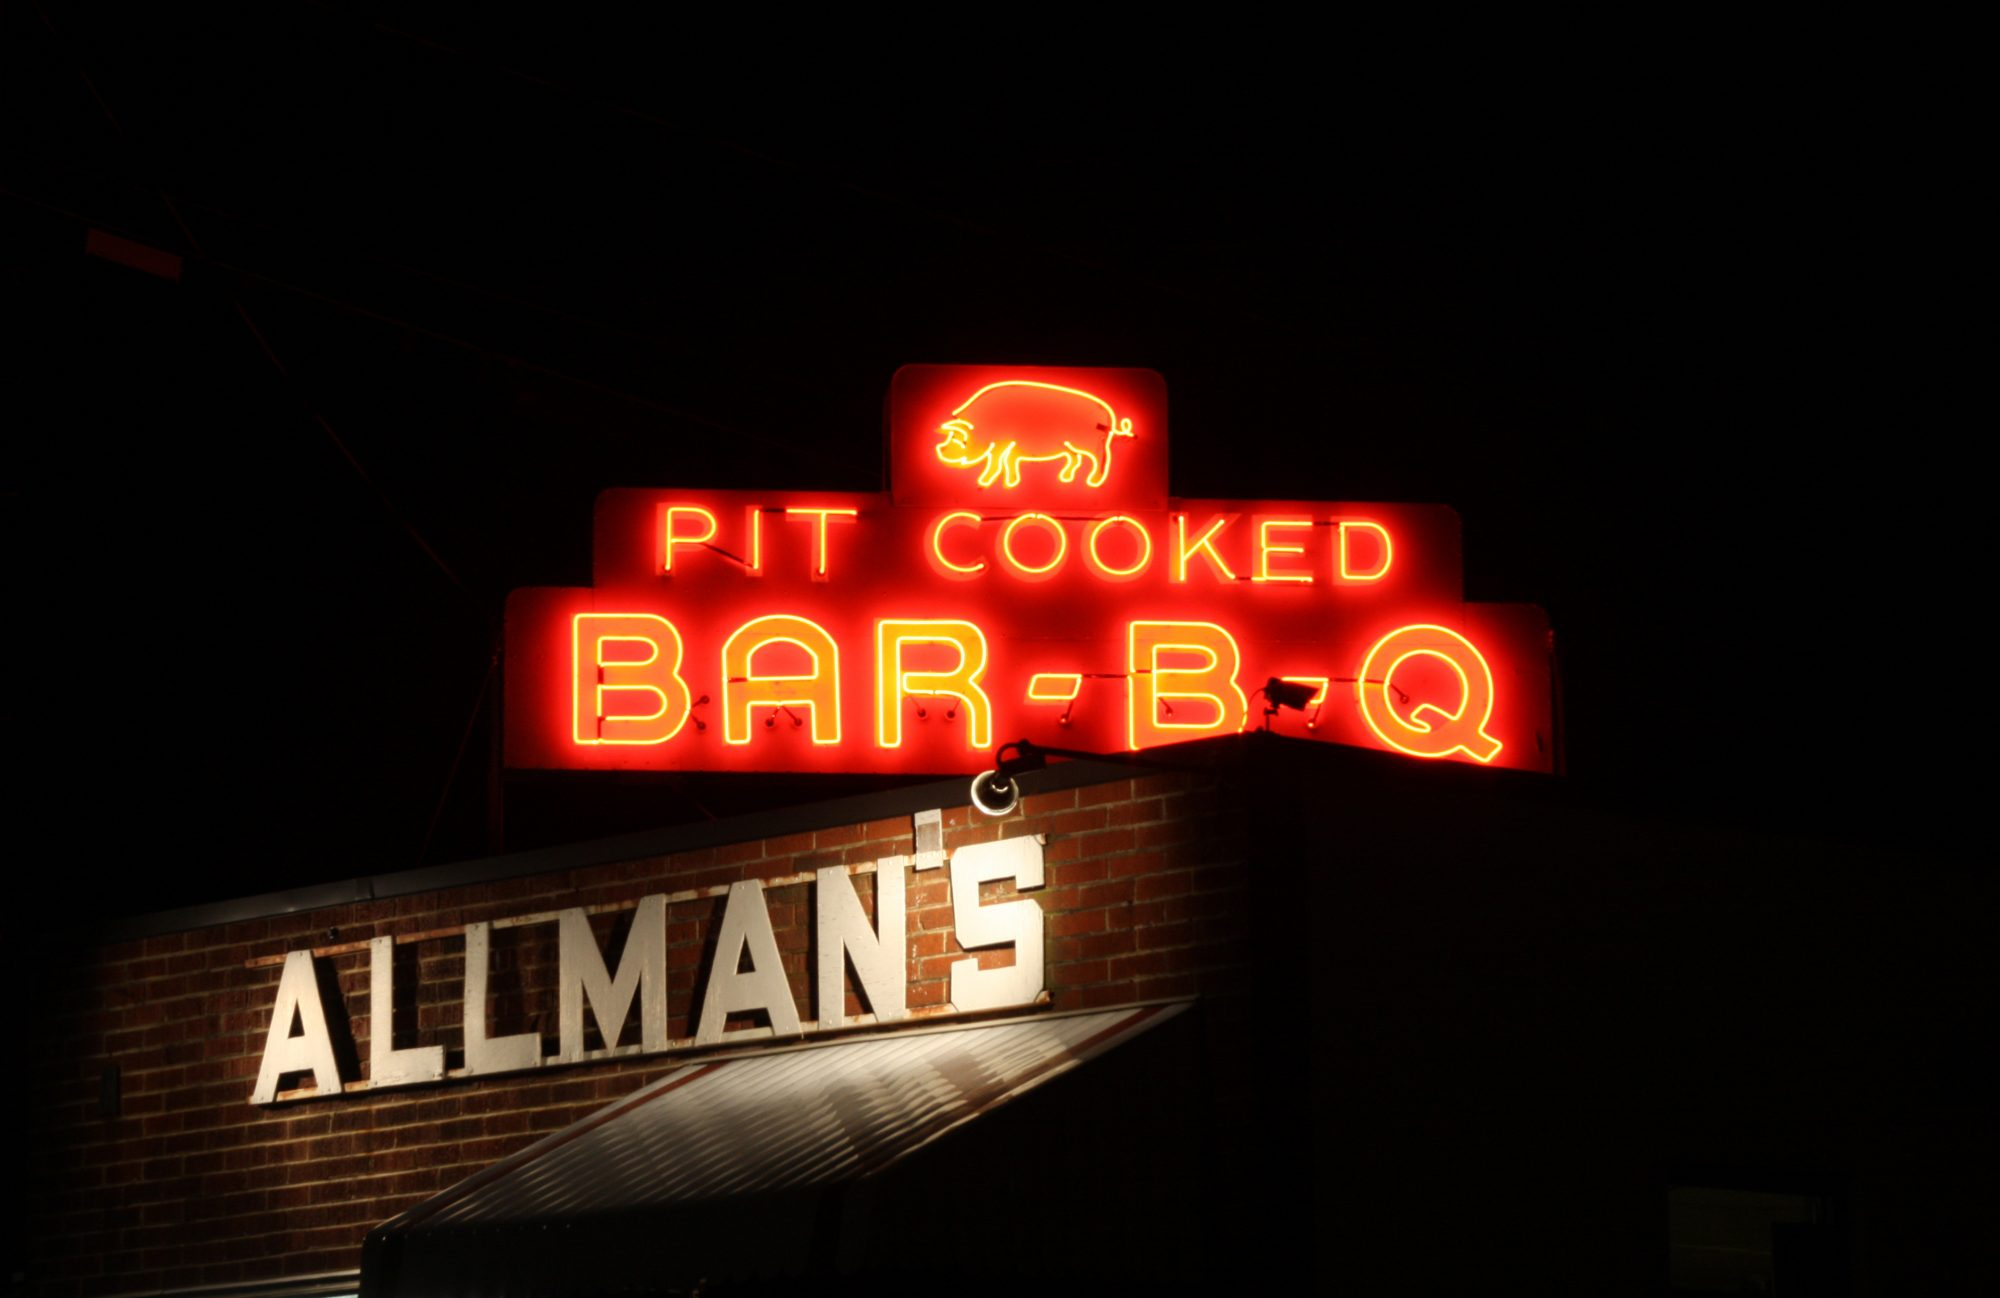 Allman's Bar-B-Que in Fredericksburg, Virginia